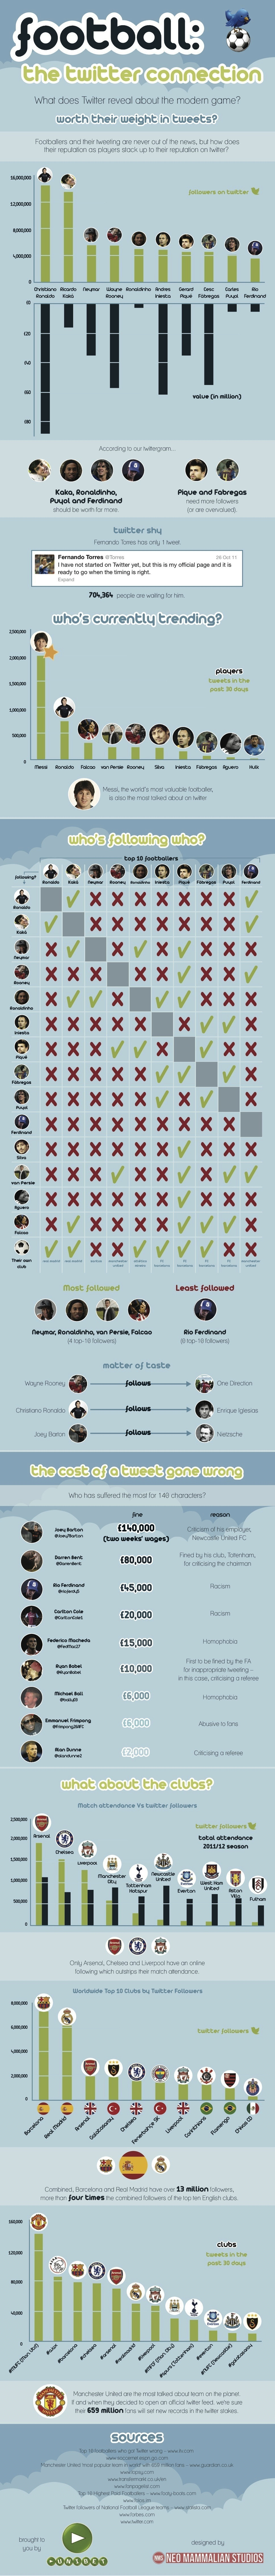 Footballers Twitter Infographic